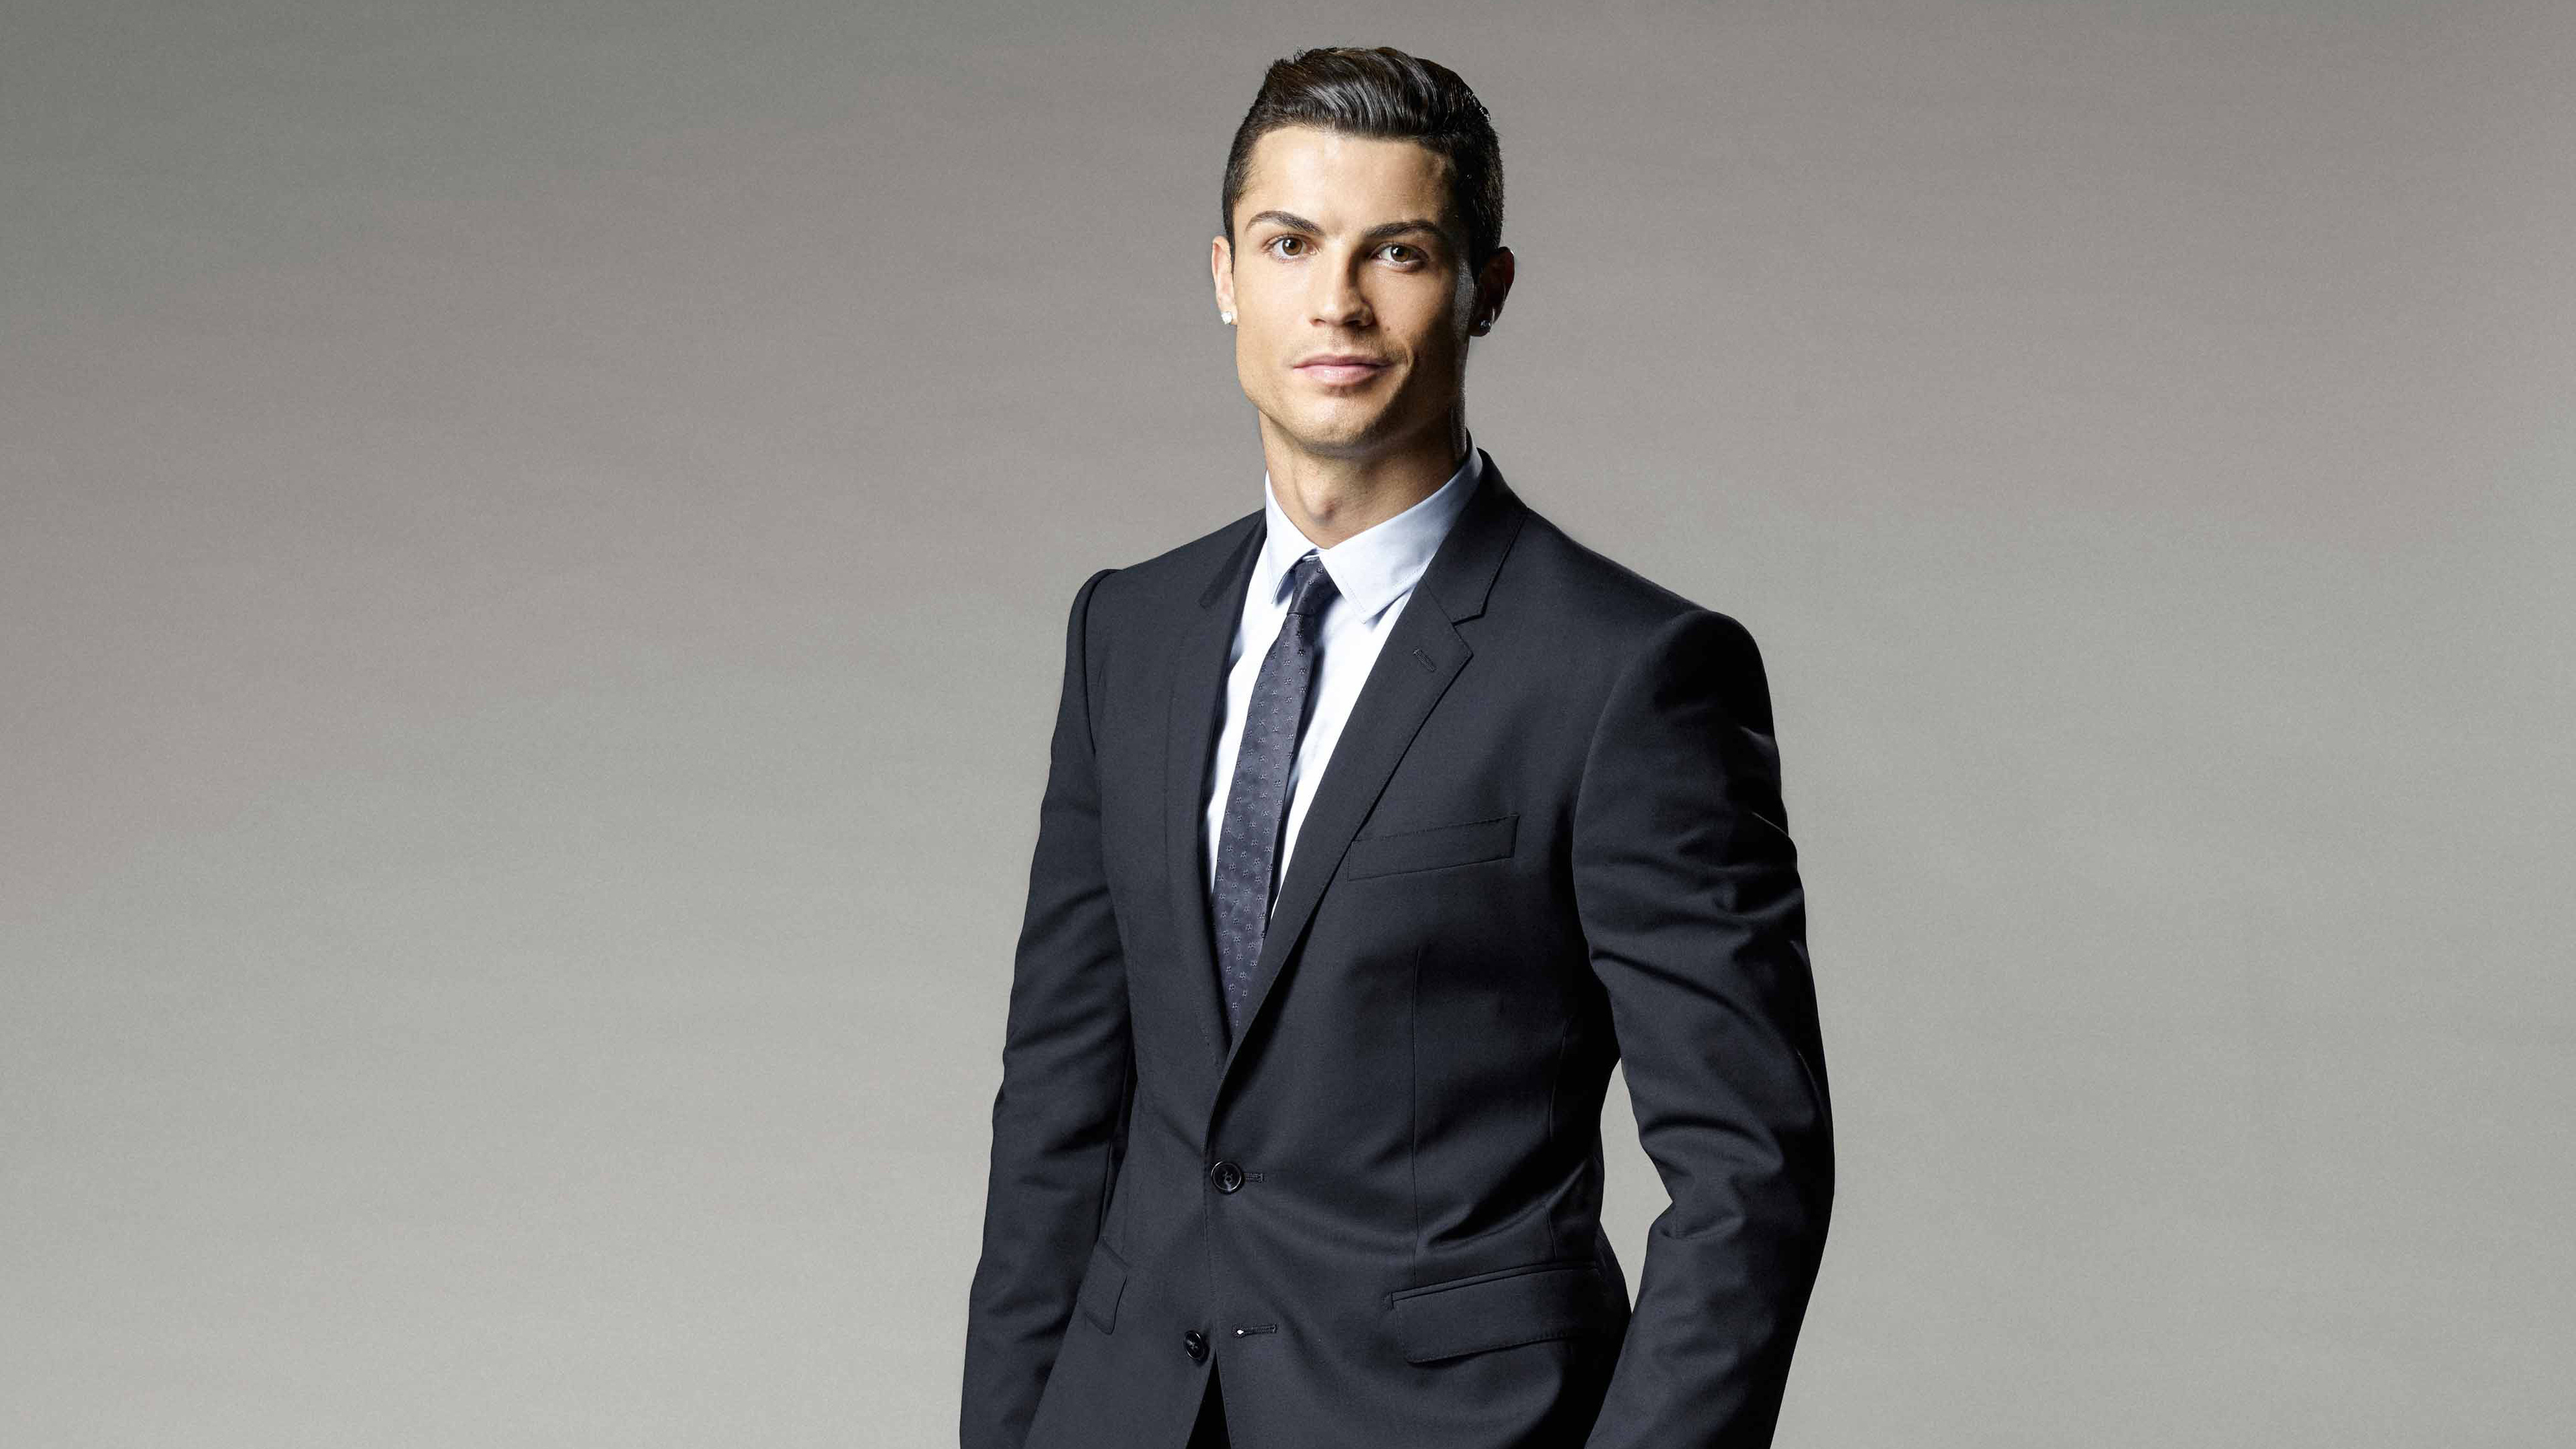 cristiano ronaldo 2019 4k 1547938844 - Cristiano Ronaldo 2019 4k - sports wallpapers, male celebrities wallpapers, hd-wallpapers, football wallpapers, cristiano ronaldo wallpapers, boys wallpapers, 4k-wallpapers